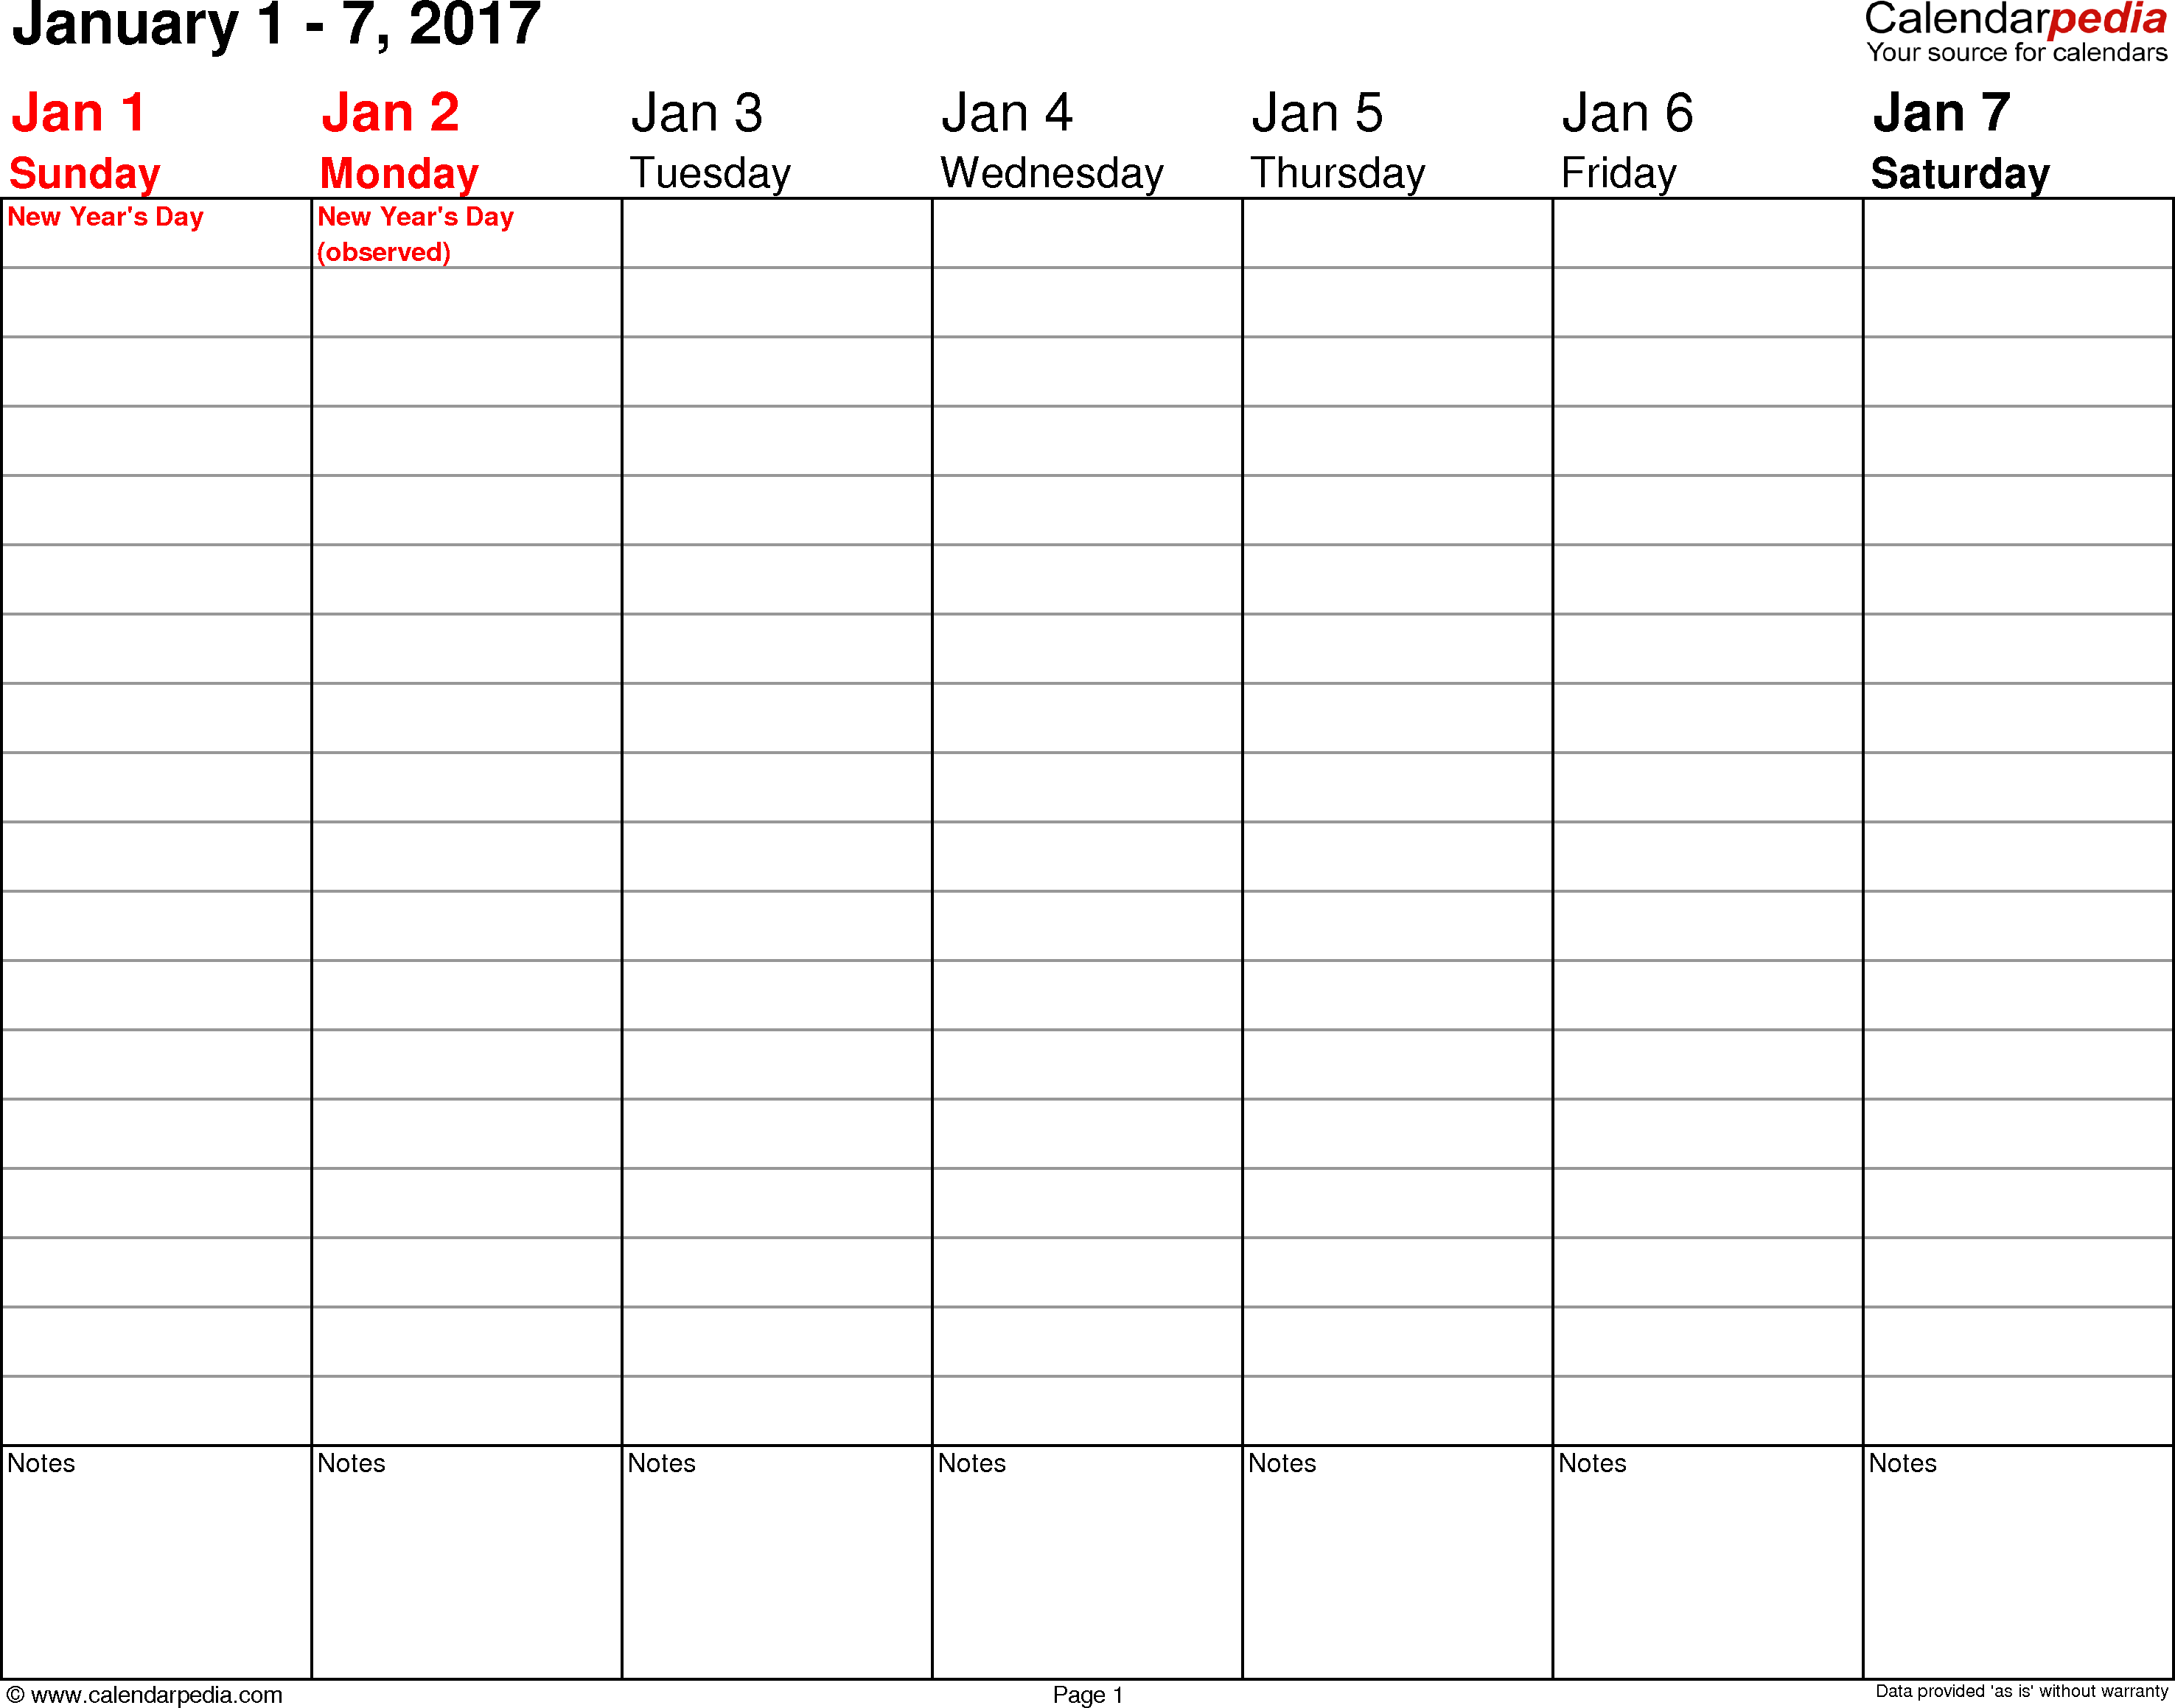 Weekly Calendar 2017: Template For Word Version 3, Landscape, 53 Pages, No